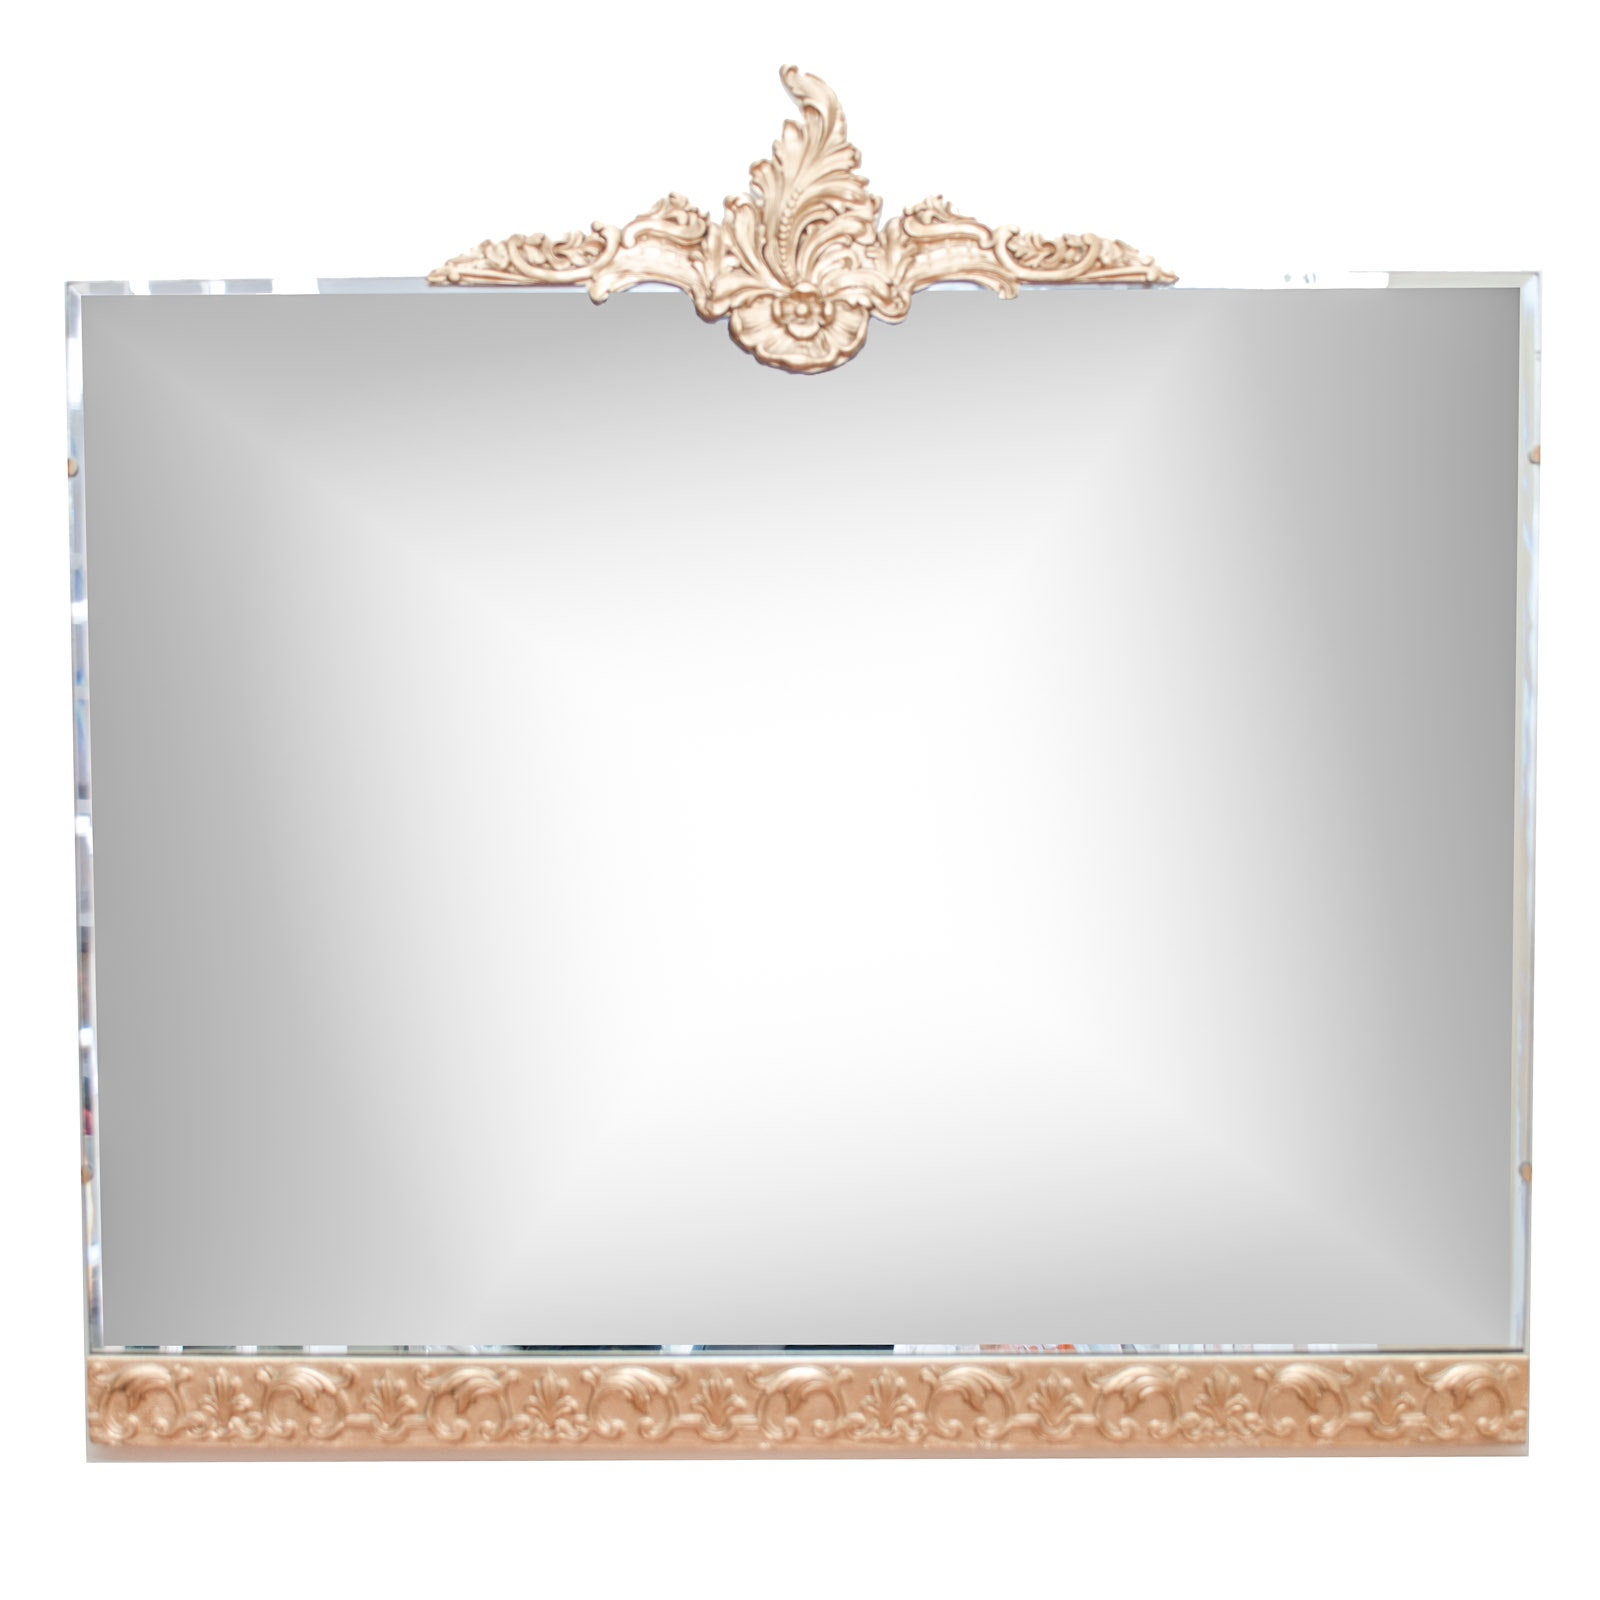 Gold-Toned Floral and Leaf Wall Mirror